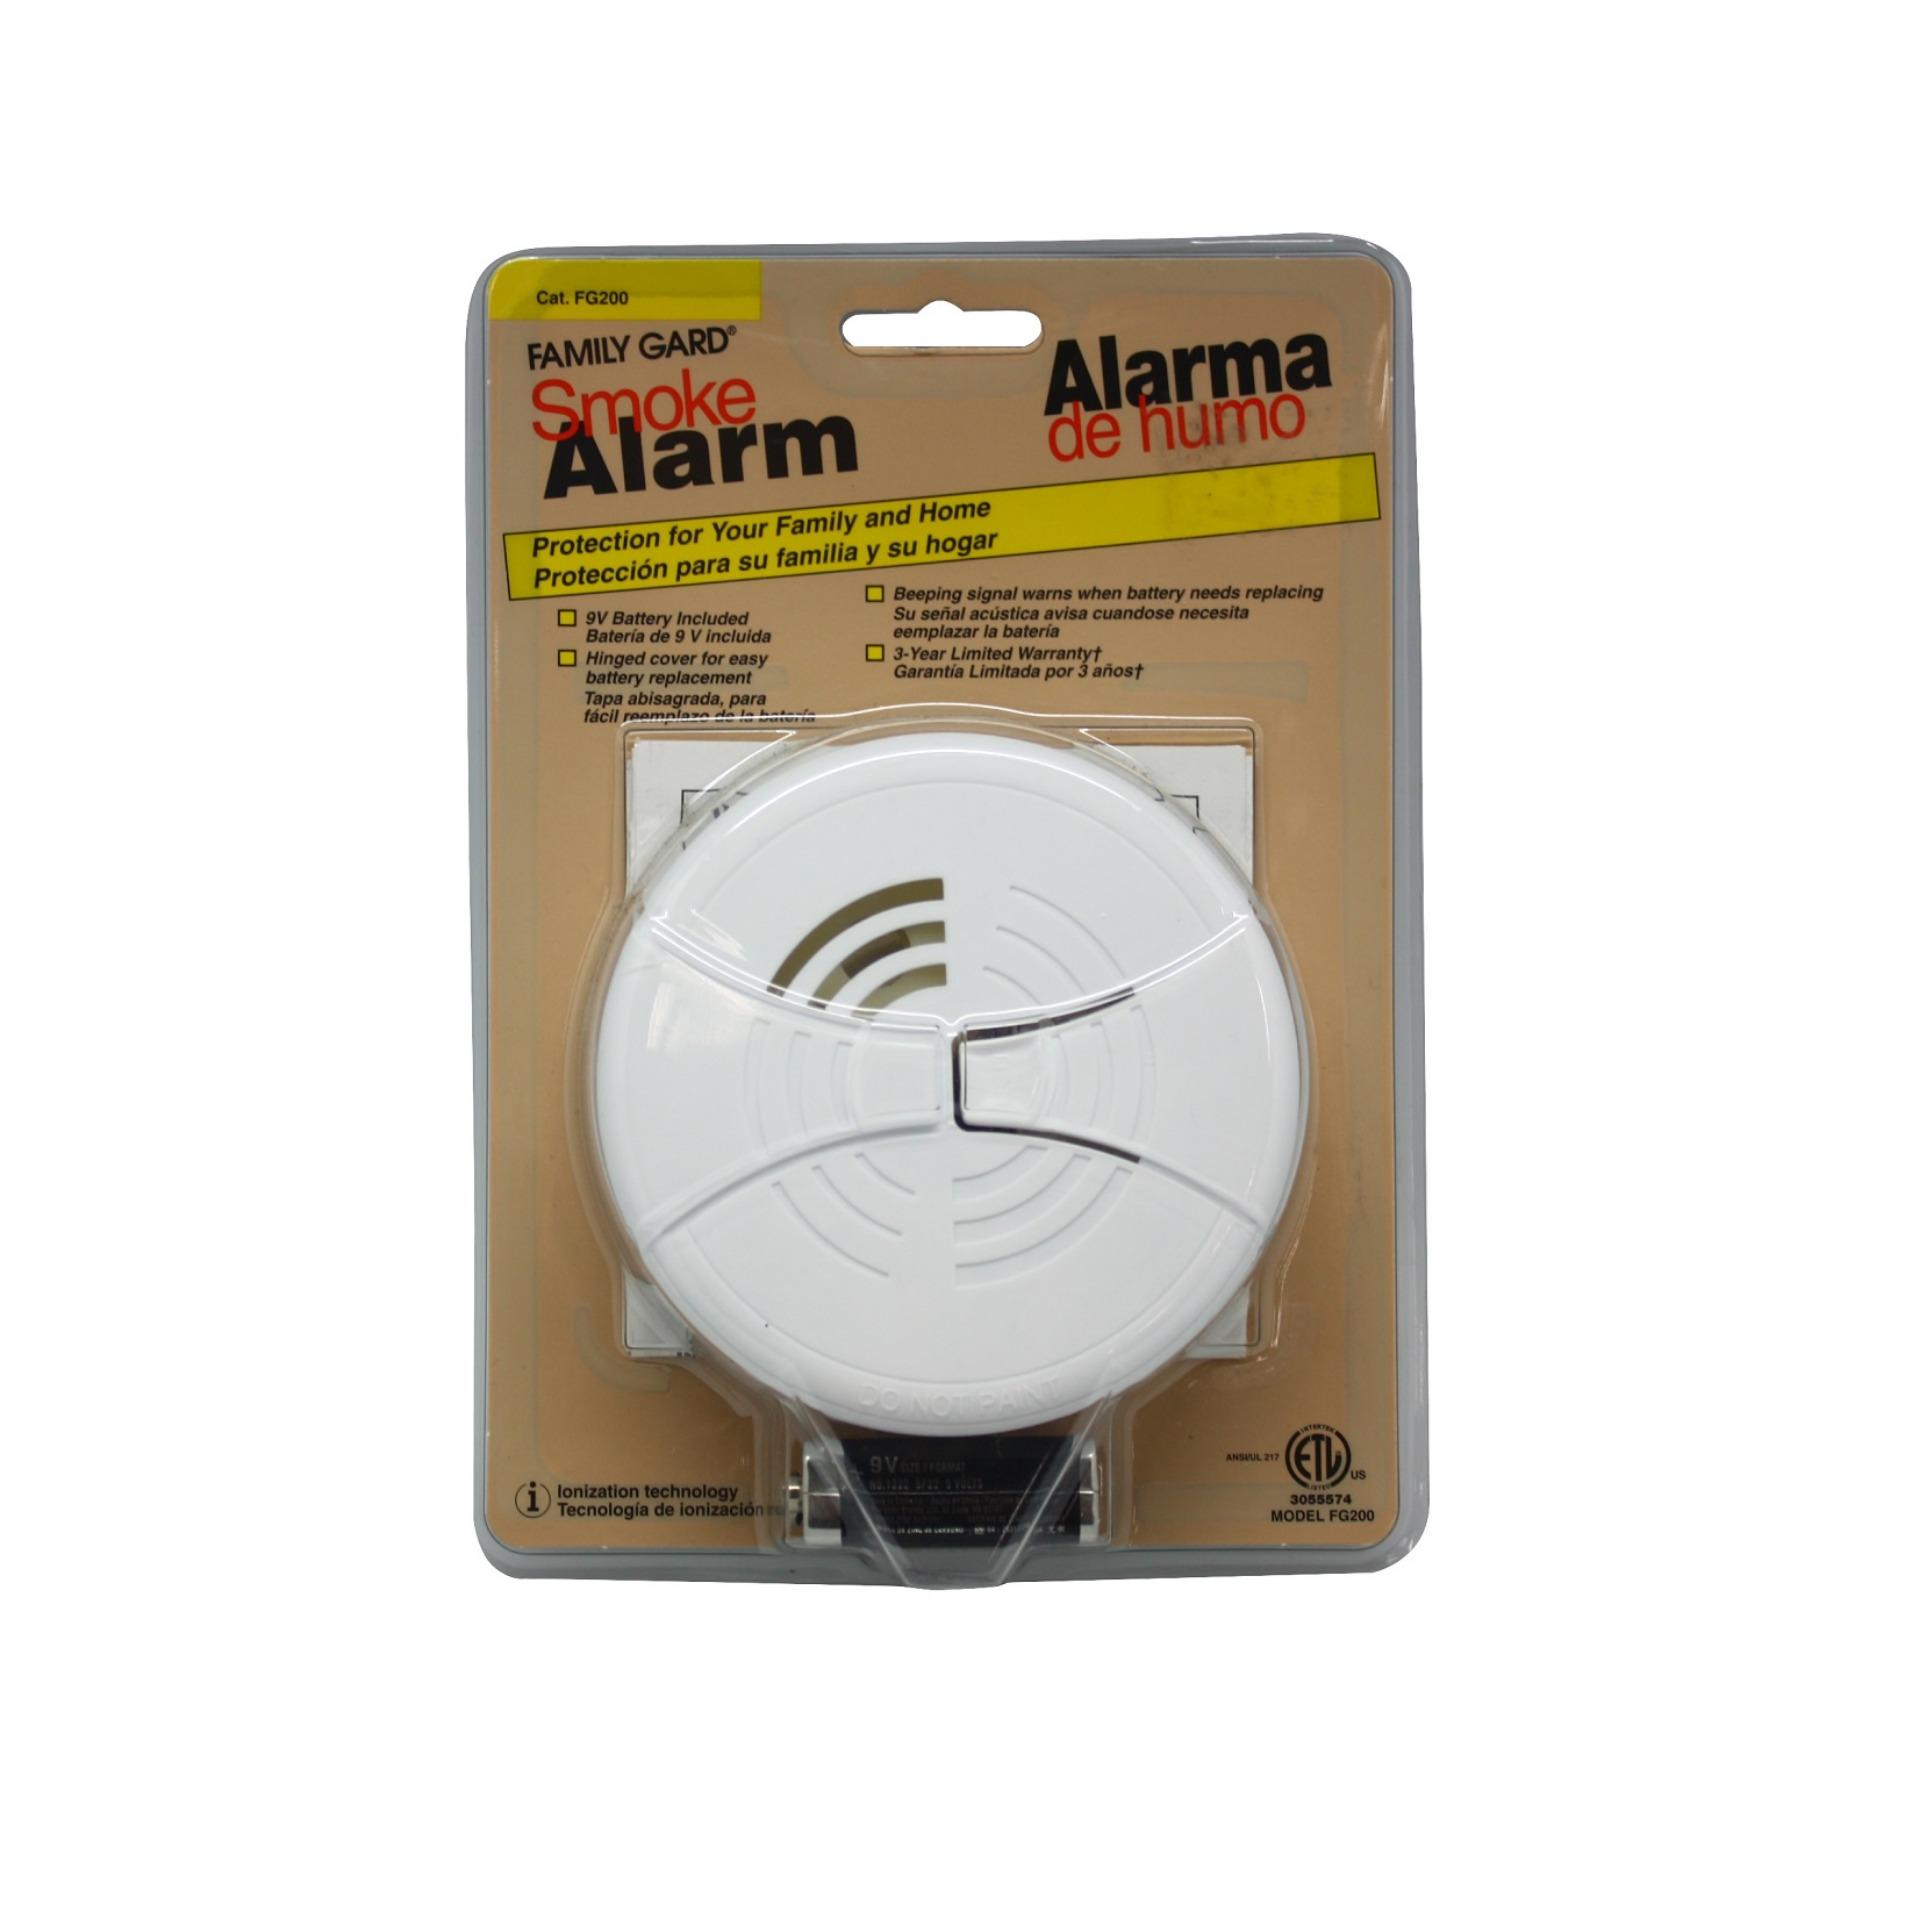 First Alert Smoke Alarm Beeping In Prissy Carbon Monoxide Brk Detectors Wiring Diagram Fullsize Of